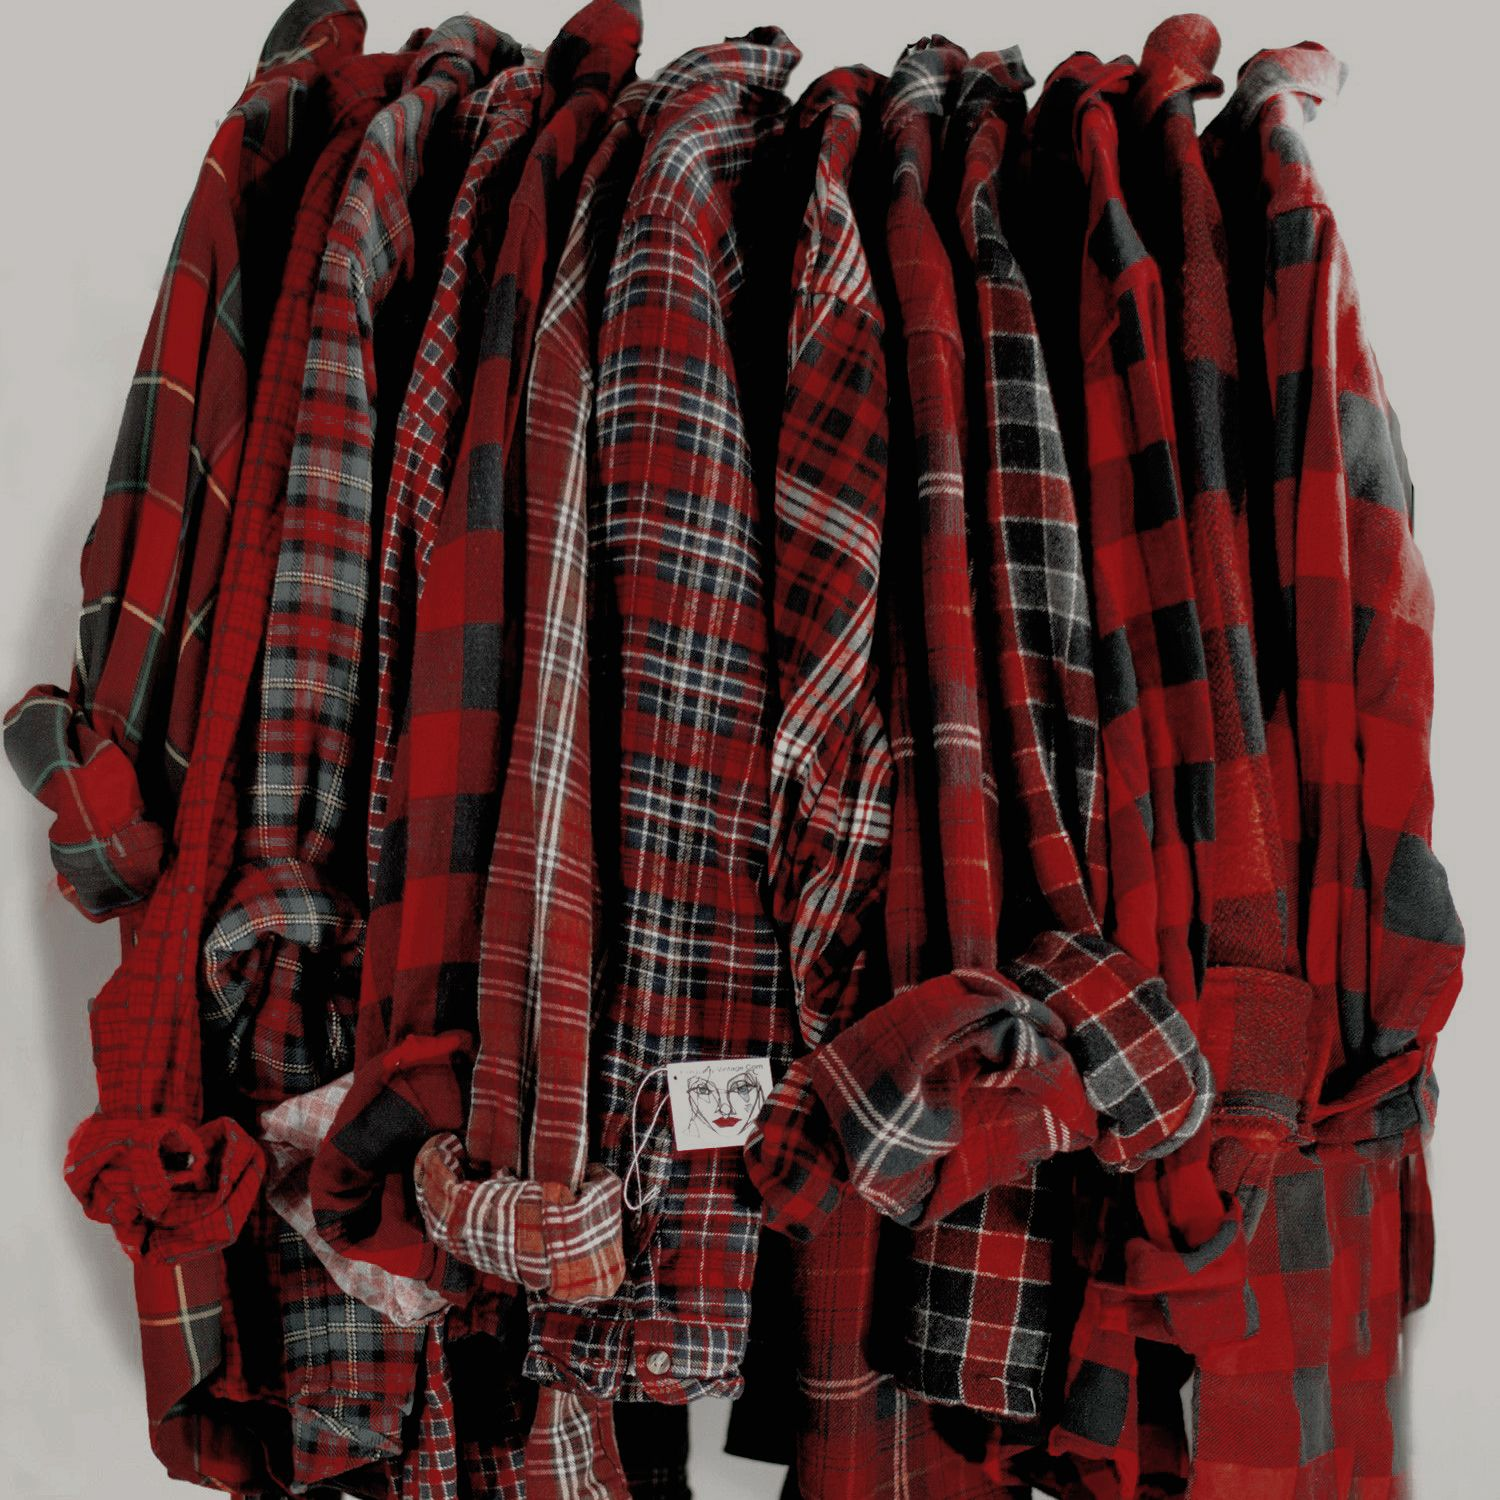 Grunge flannel outfits  them  ucand along with that i got youud sean pulls out a brand new